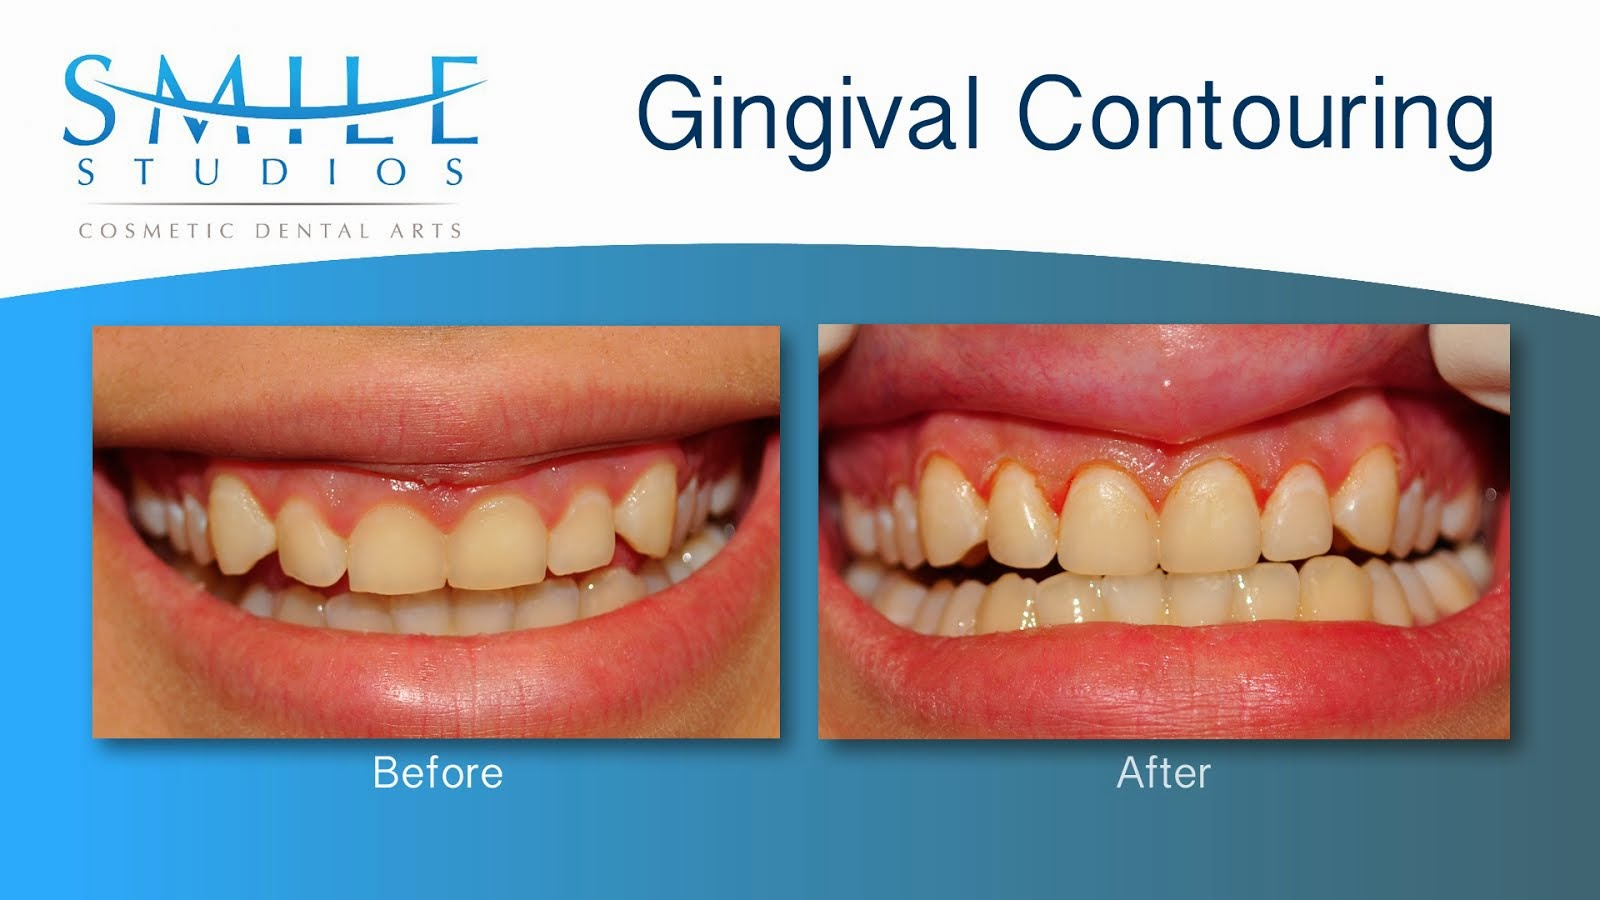 Gingival Contouring